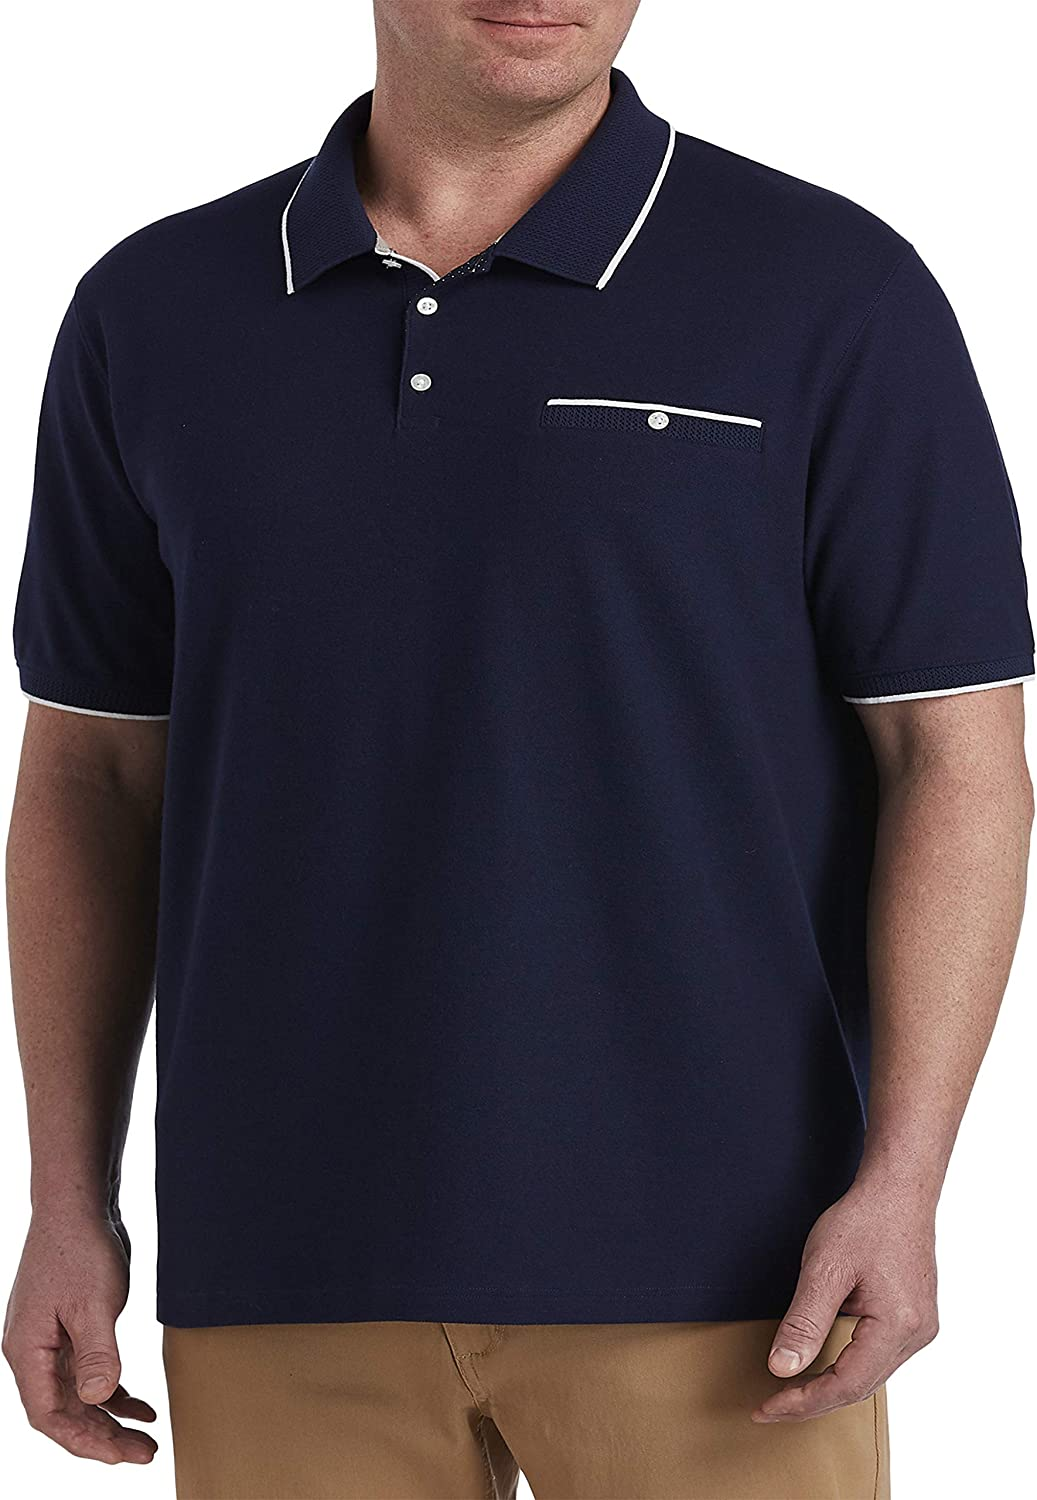 Harbor Bay by DXL Big and Tall Contrast Detail Performance Polo Shirt, Blue